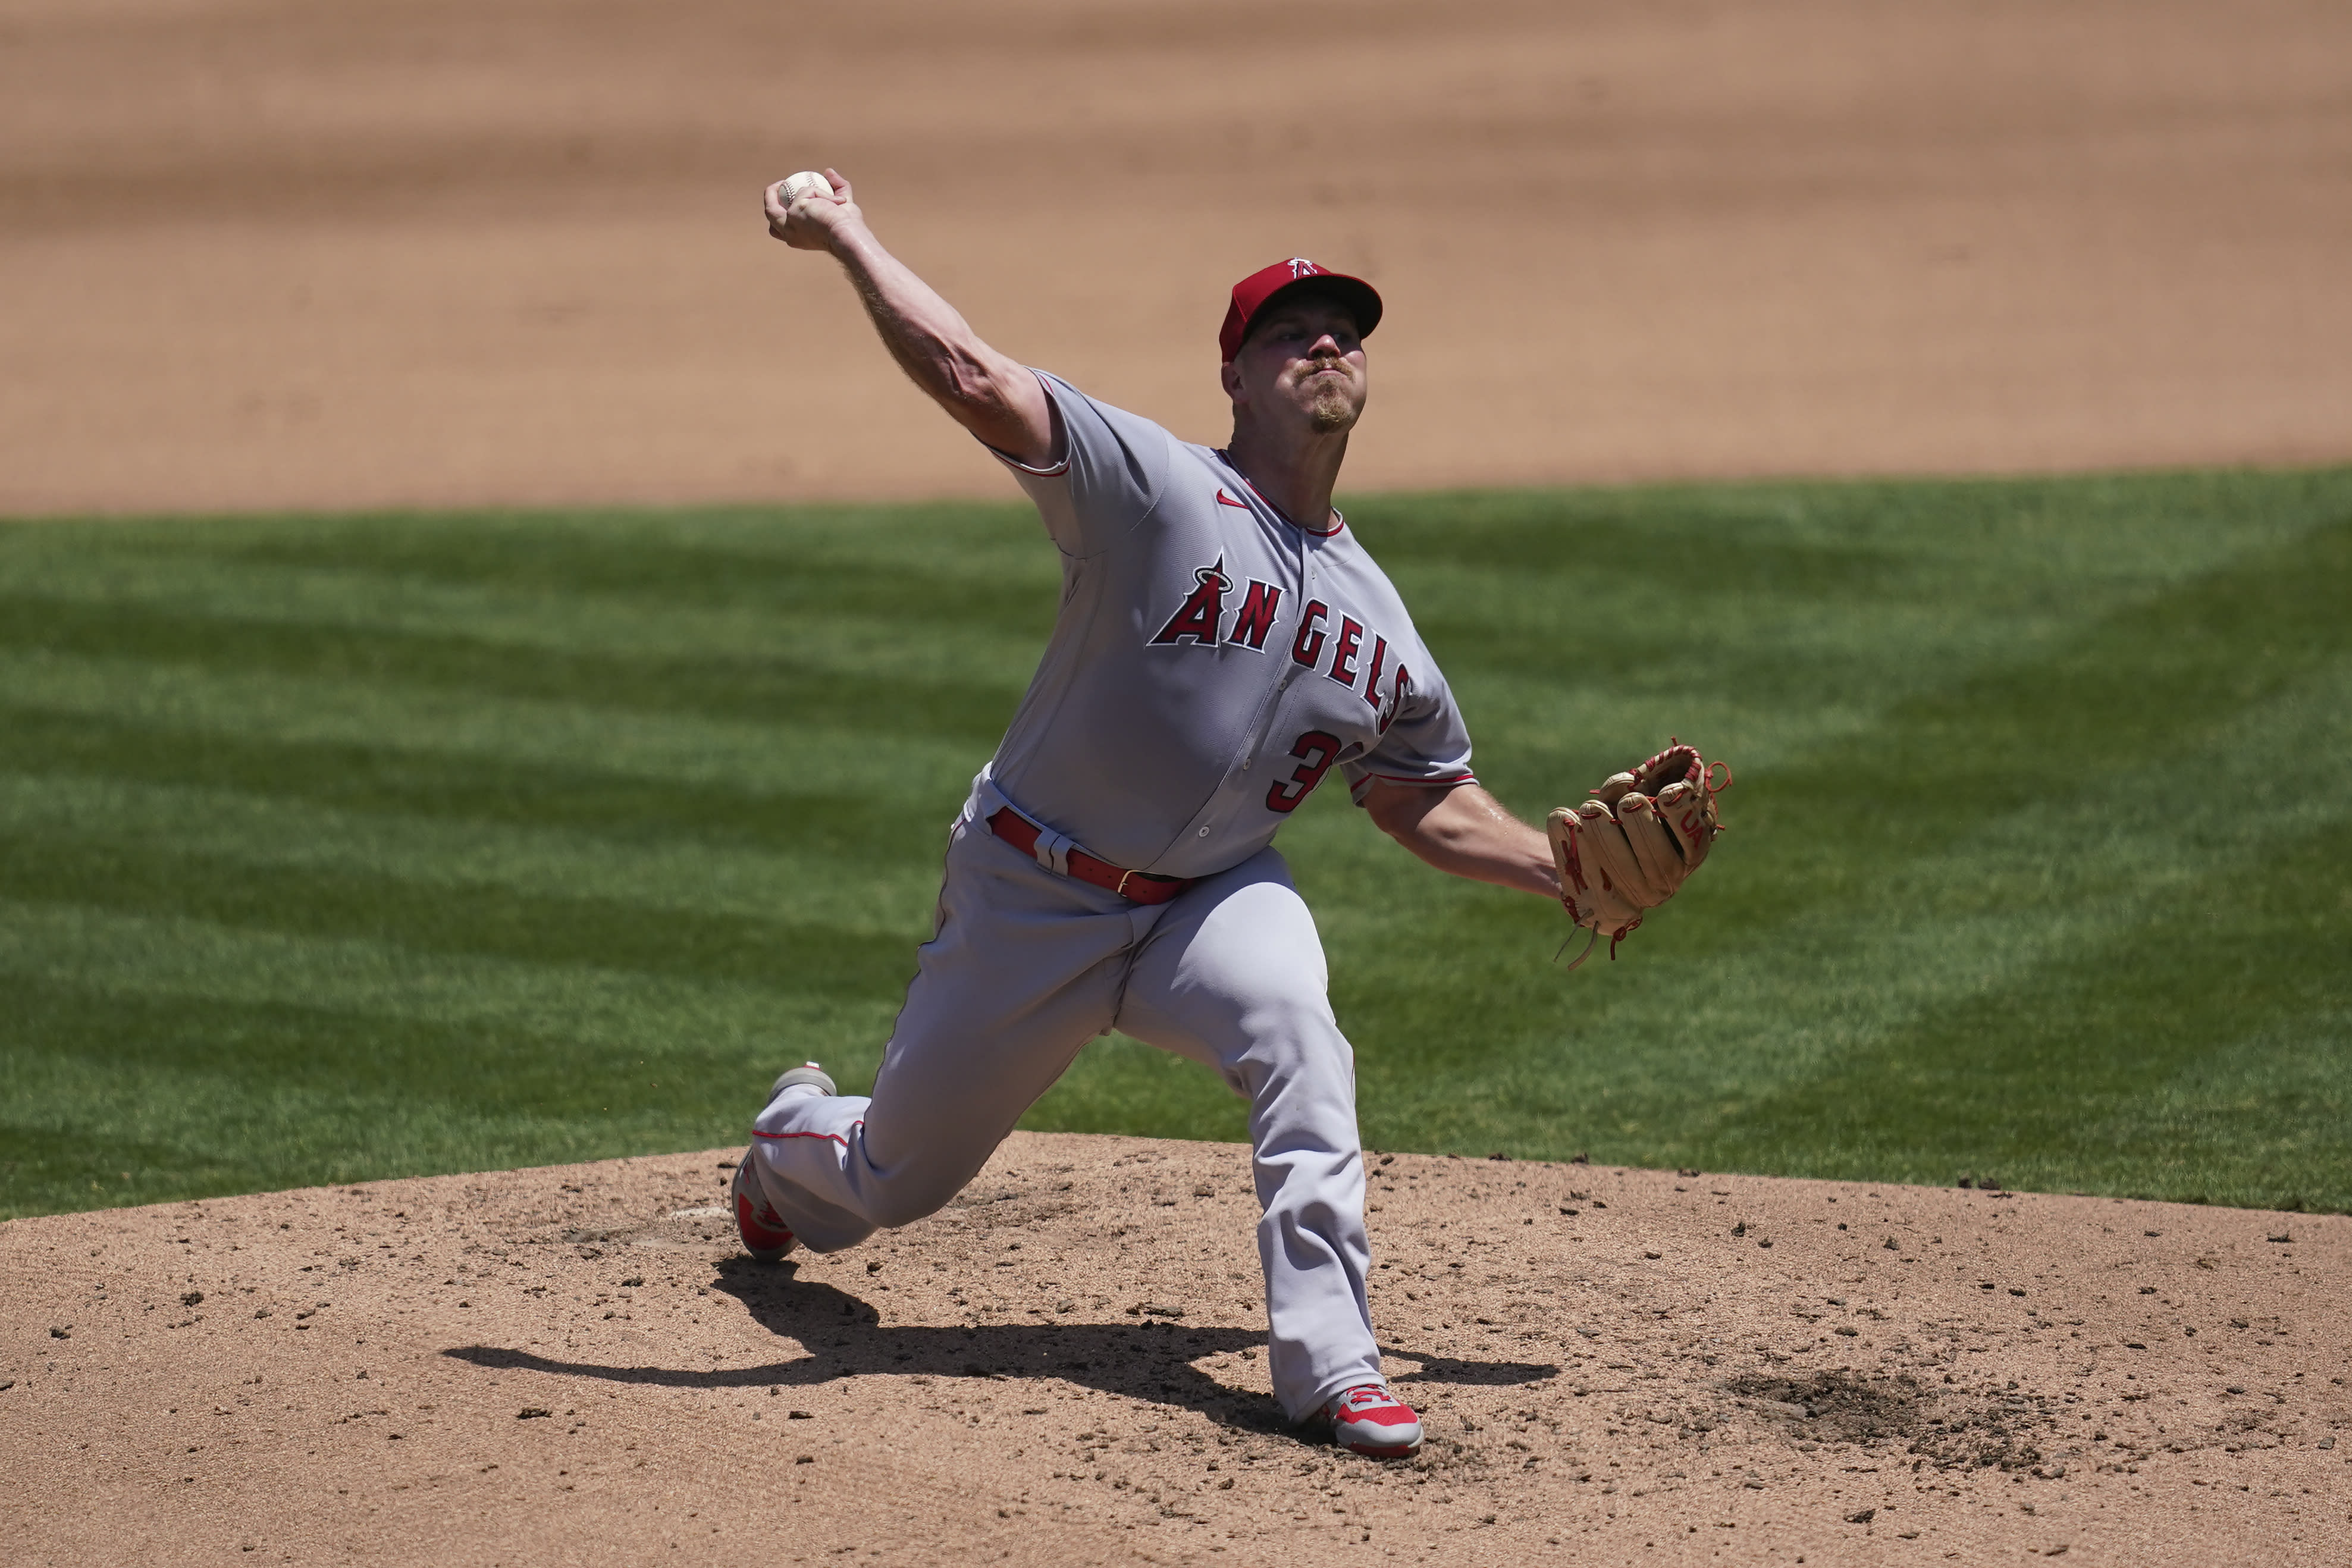 Los Angeles Angels pitcher Dylan Bundy throws against the Oakland Athletics during the fourth inning of a baseball game in Oakland, Calif., Saturday, July 25, 2020. (AP Photo/Jeff Chiu)